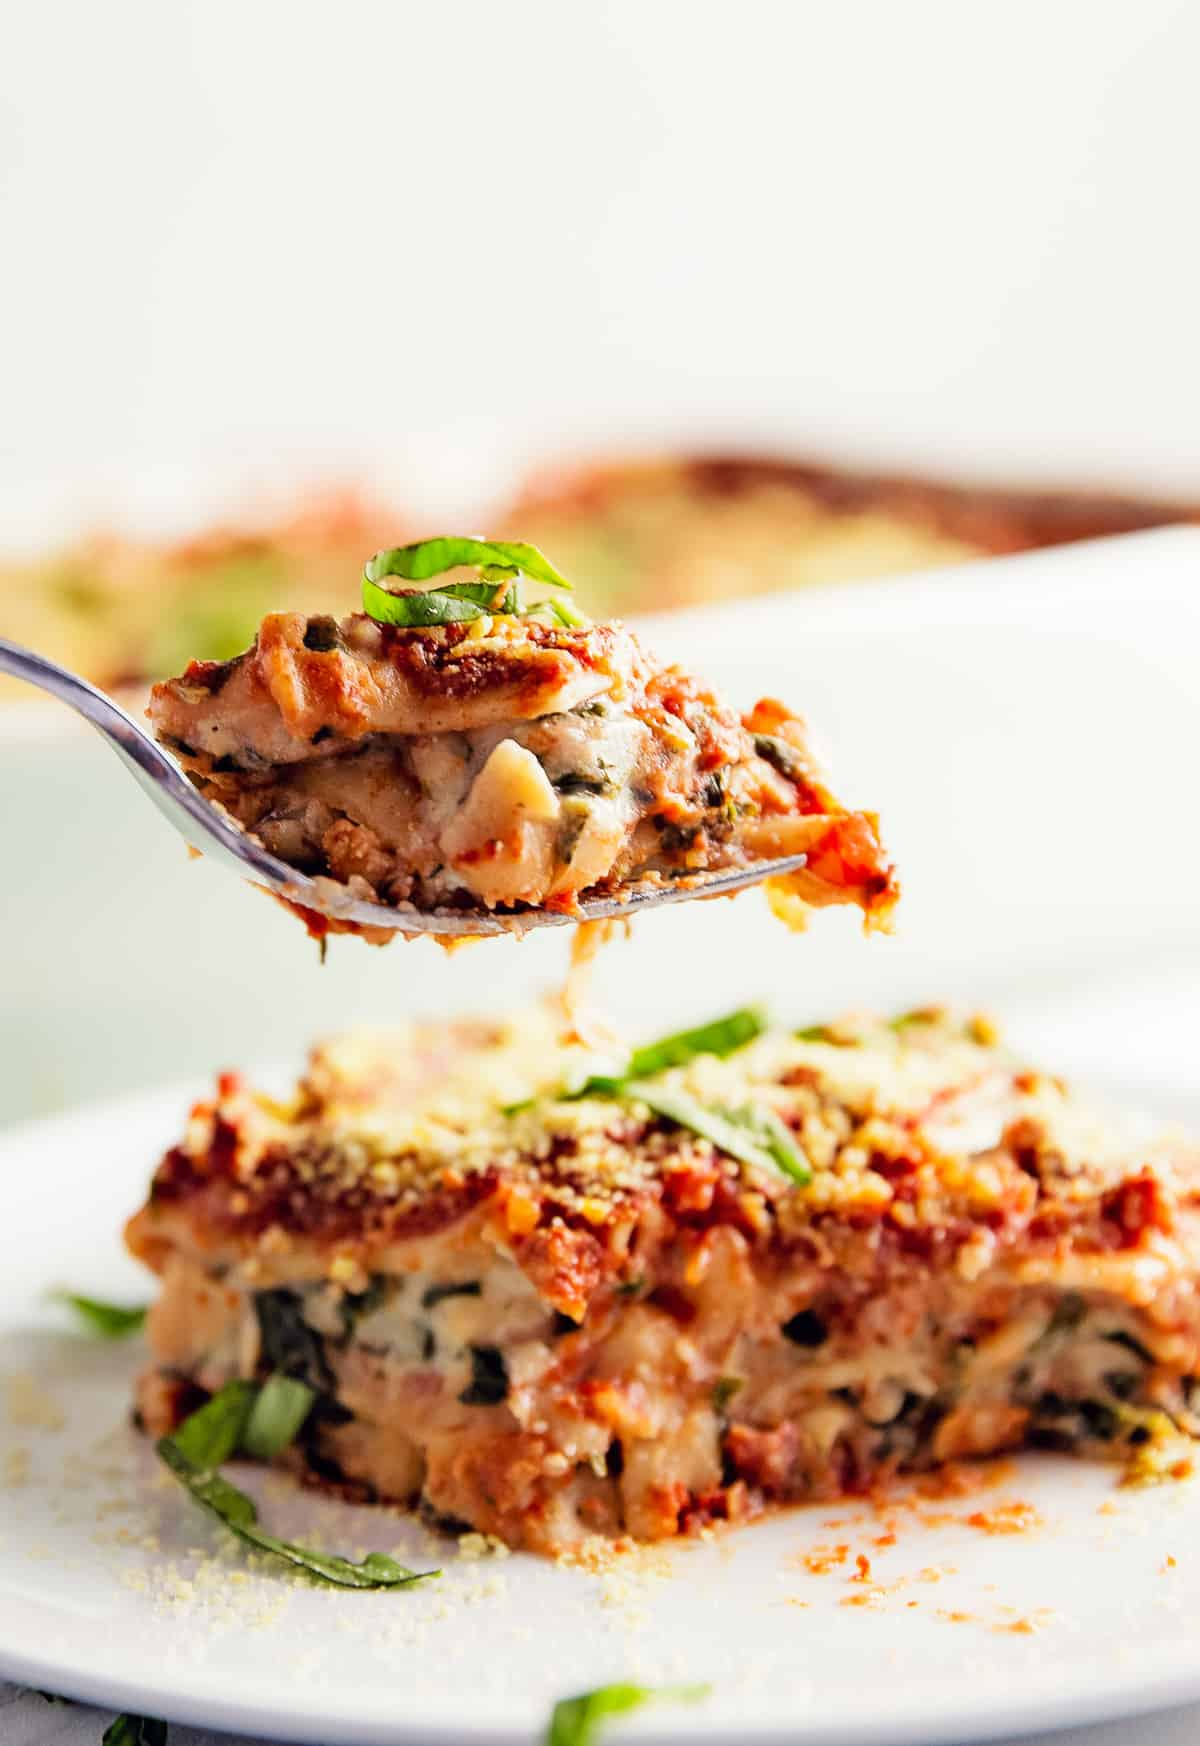 Lasagna, Béchamel and red sauce, marinara, recipe, vegan, vegetarian, whole food plant based, wfpb, gluten free, oil free, refined sugar free, no oil, no refined sugar, no dairy, dinner, lunch, dinner party, entertaining, simple, healthy